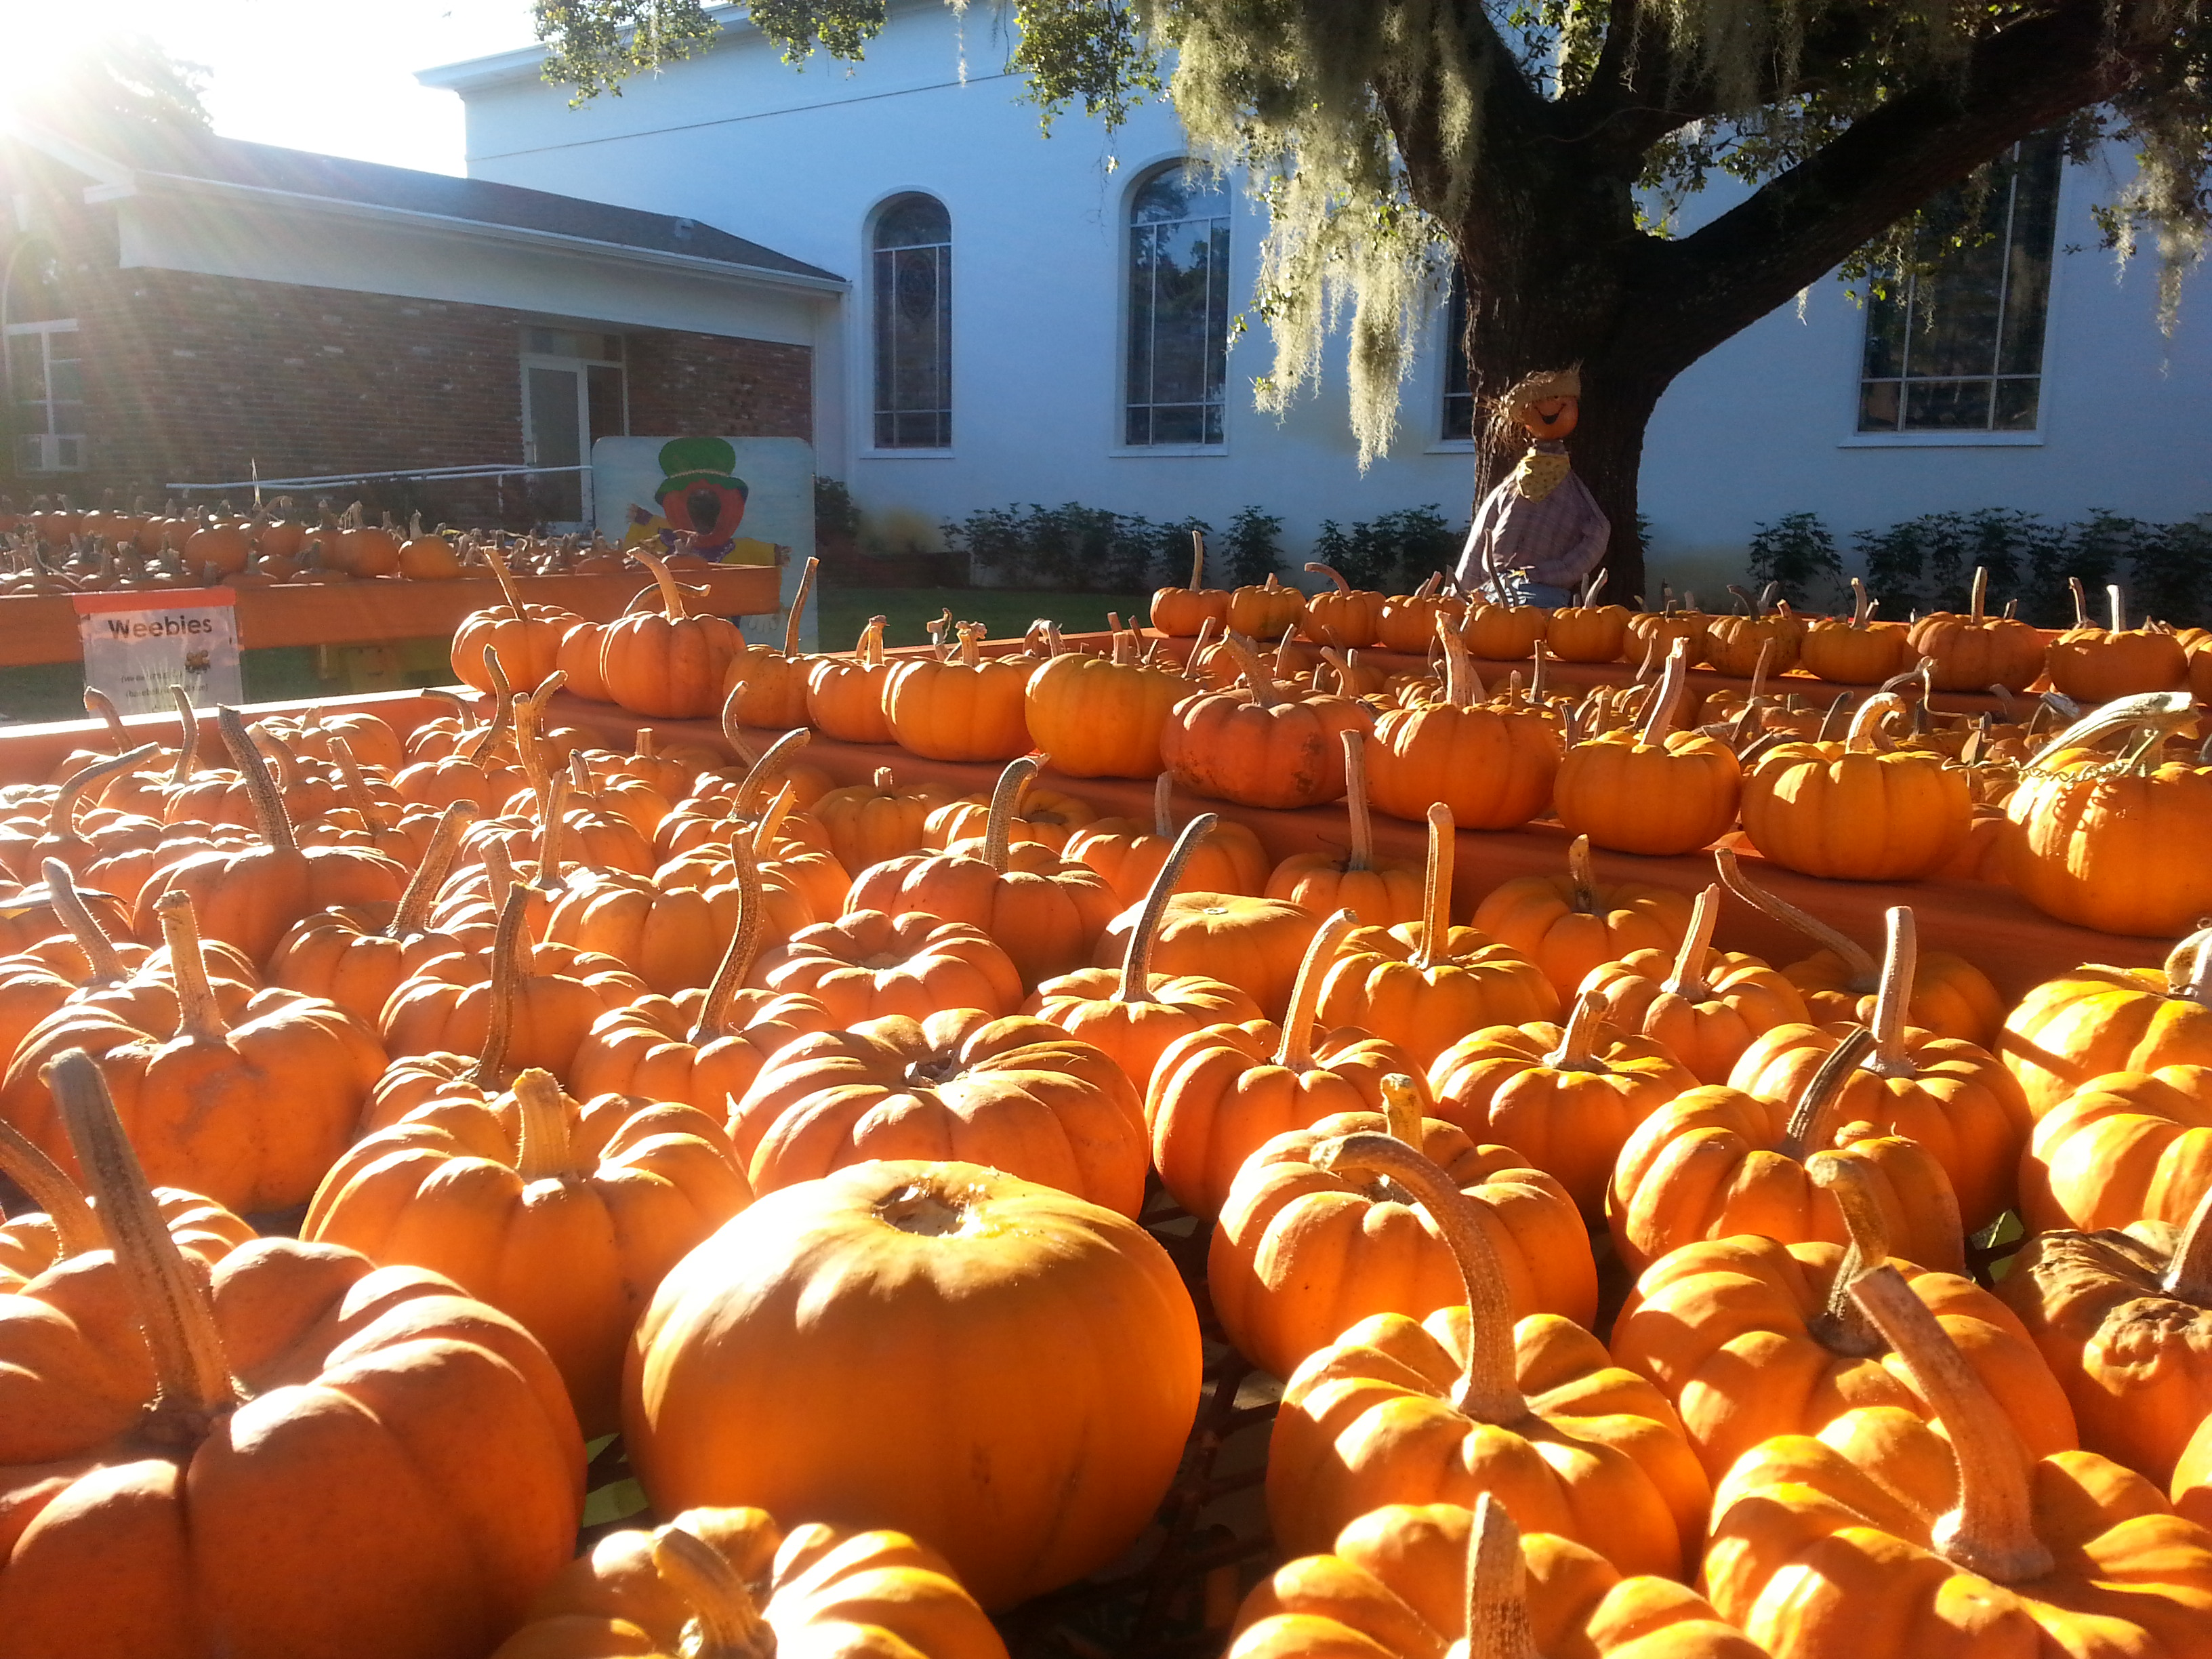 many events will feature a pumpkin patch kids area a corn maze safe trick or treating hayrides live bands lots of arts and craft vendors - Halloween Events In Broward